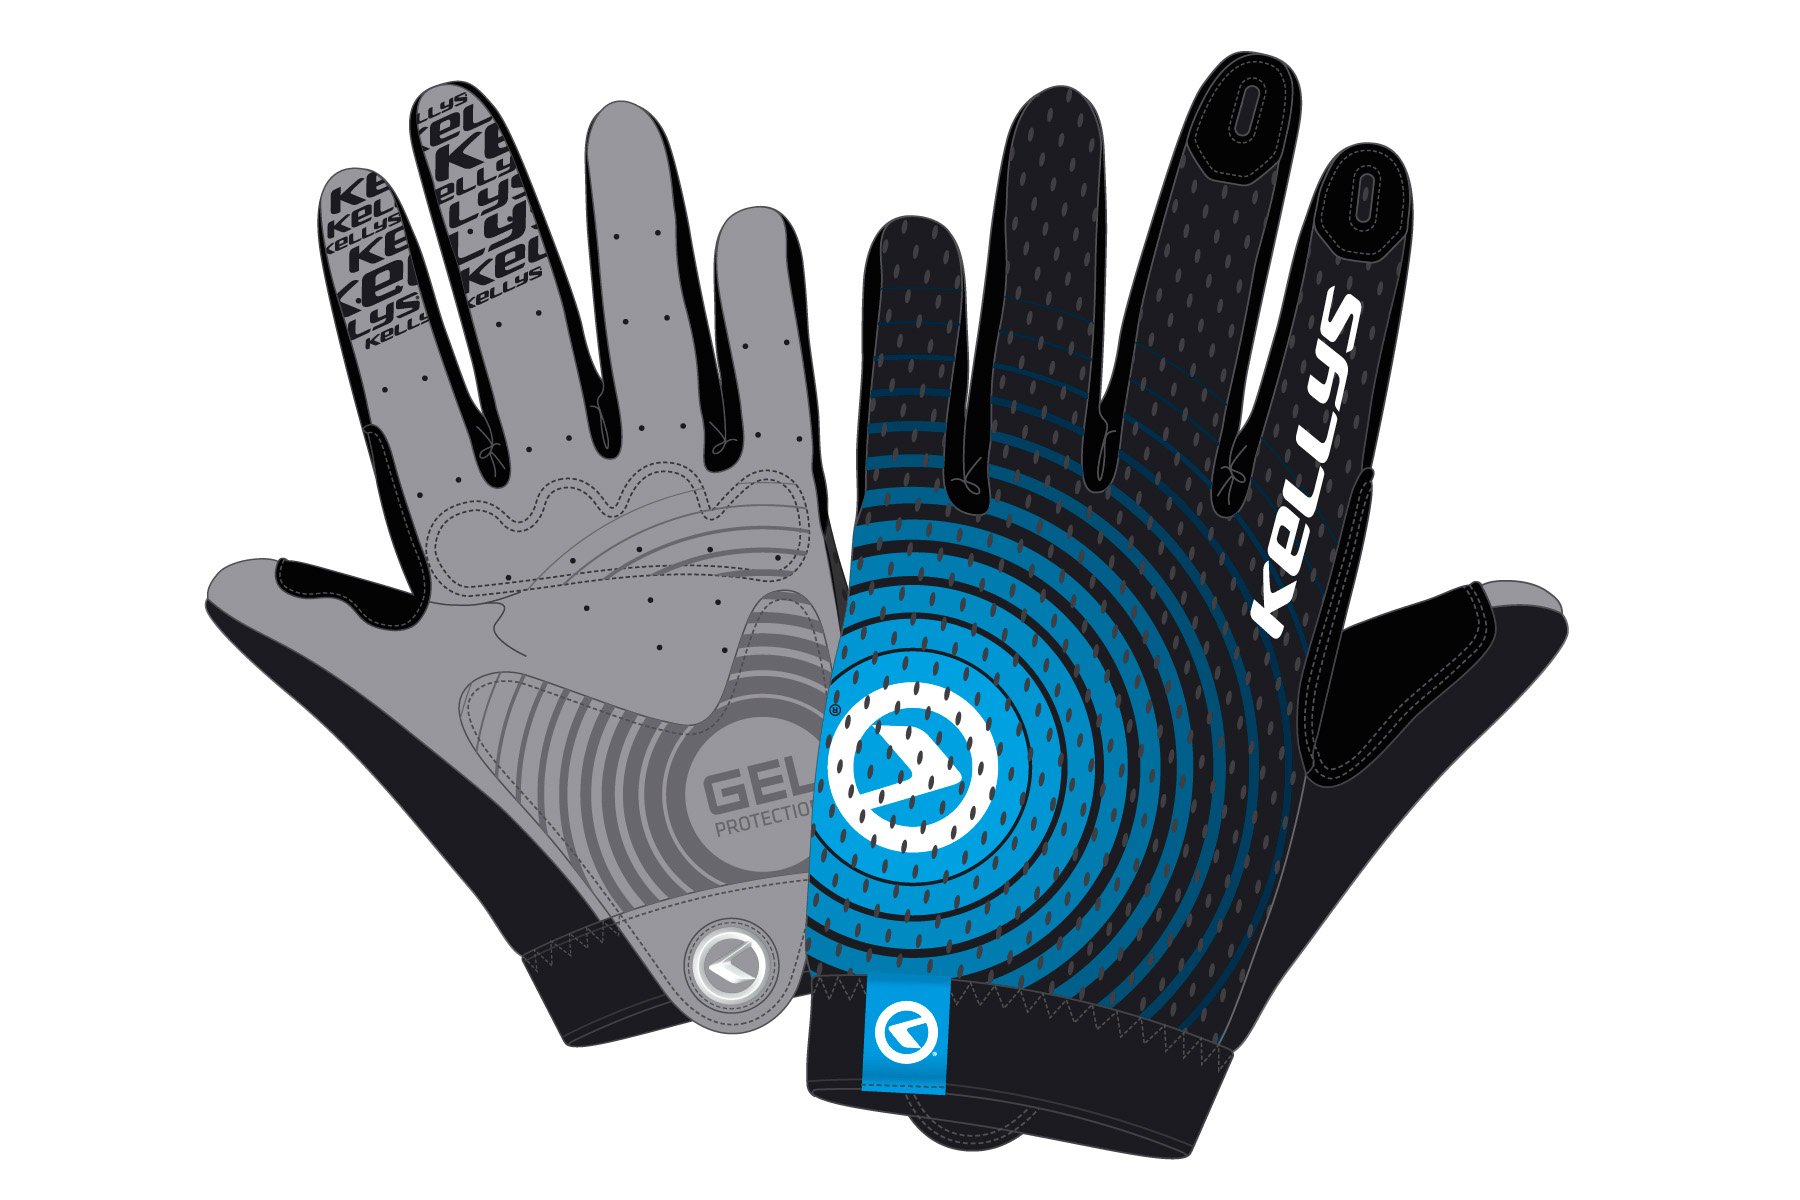 Handschuhe INSTINCT long black-blue XL - Handschuhe INSTINCT long black-blue XL